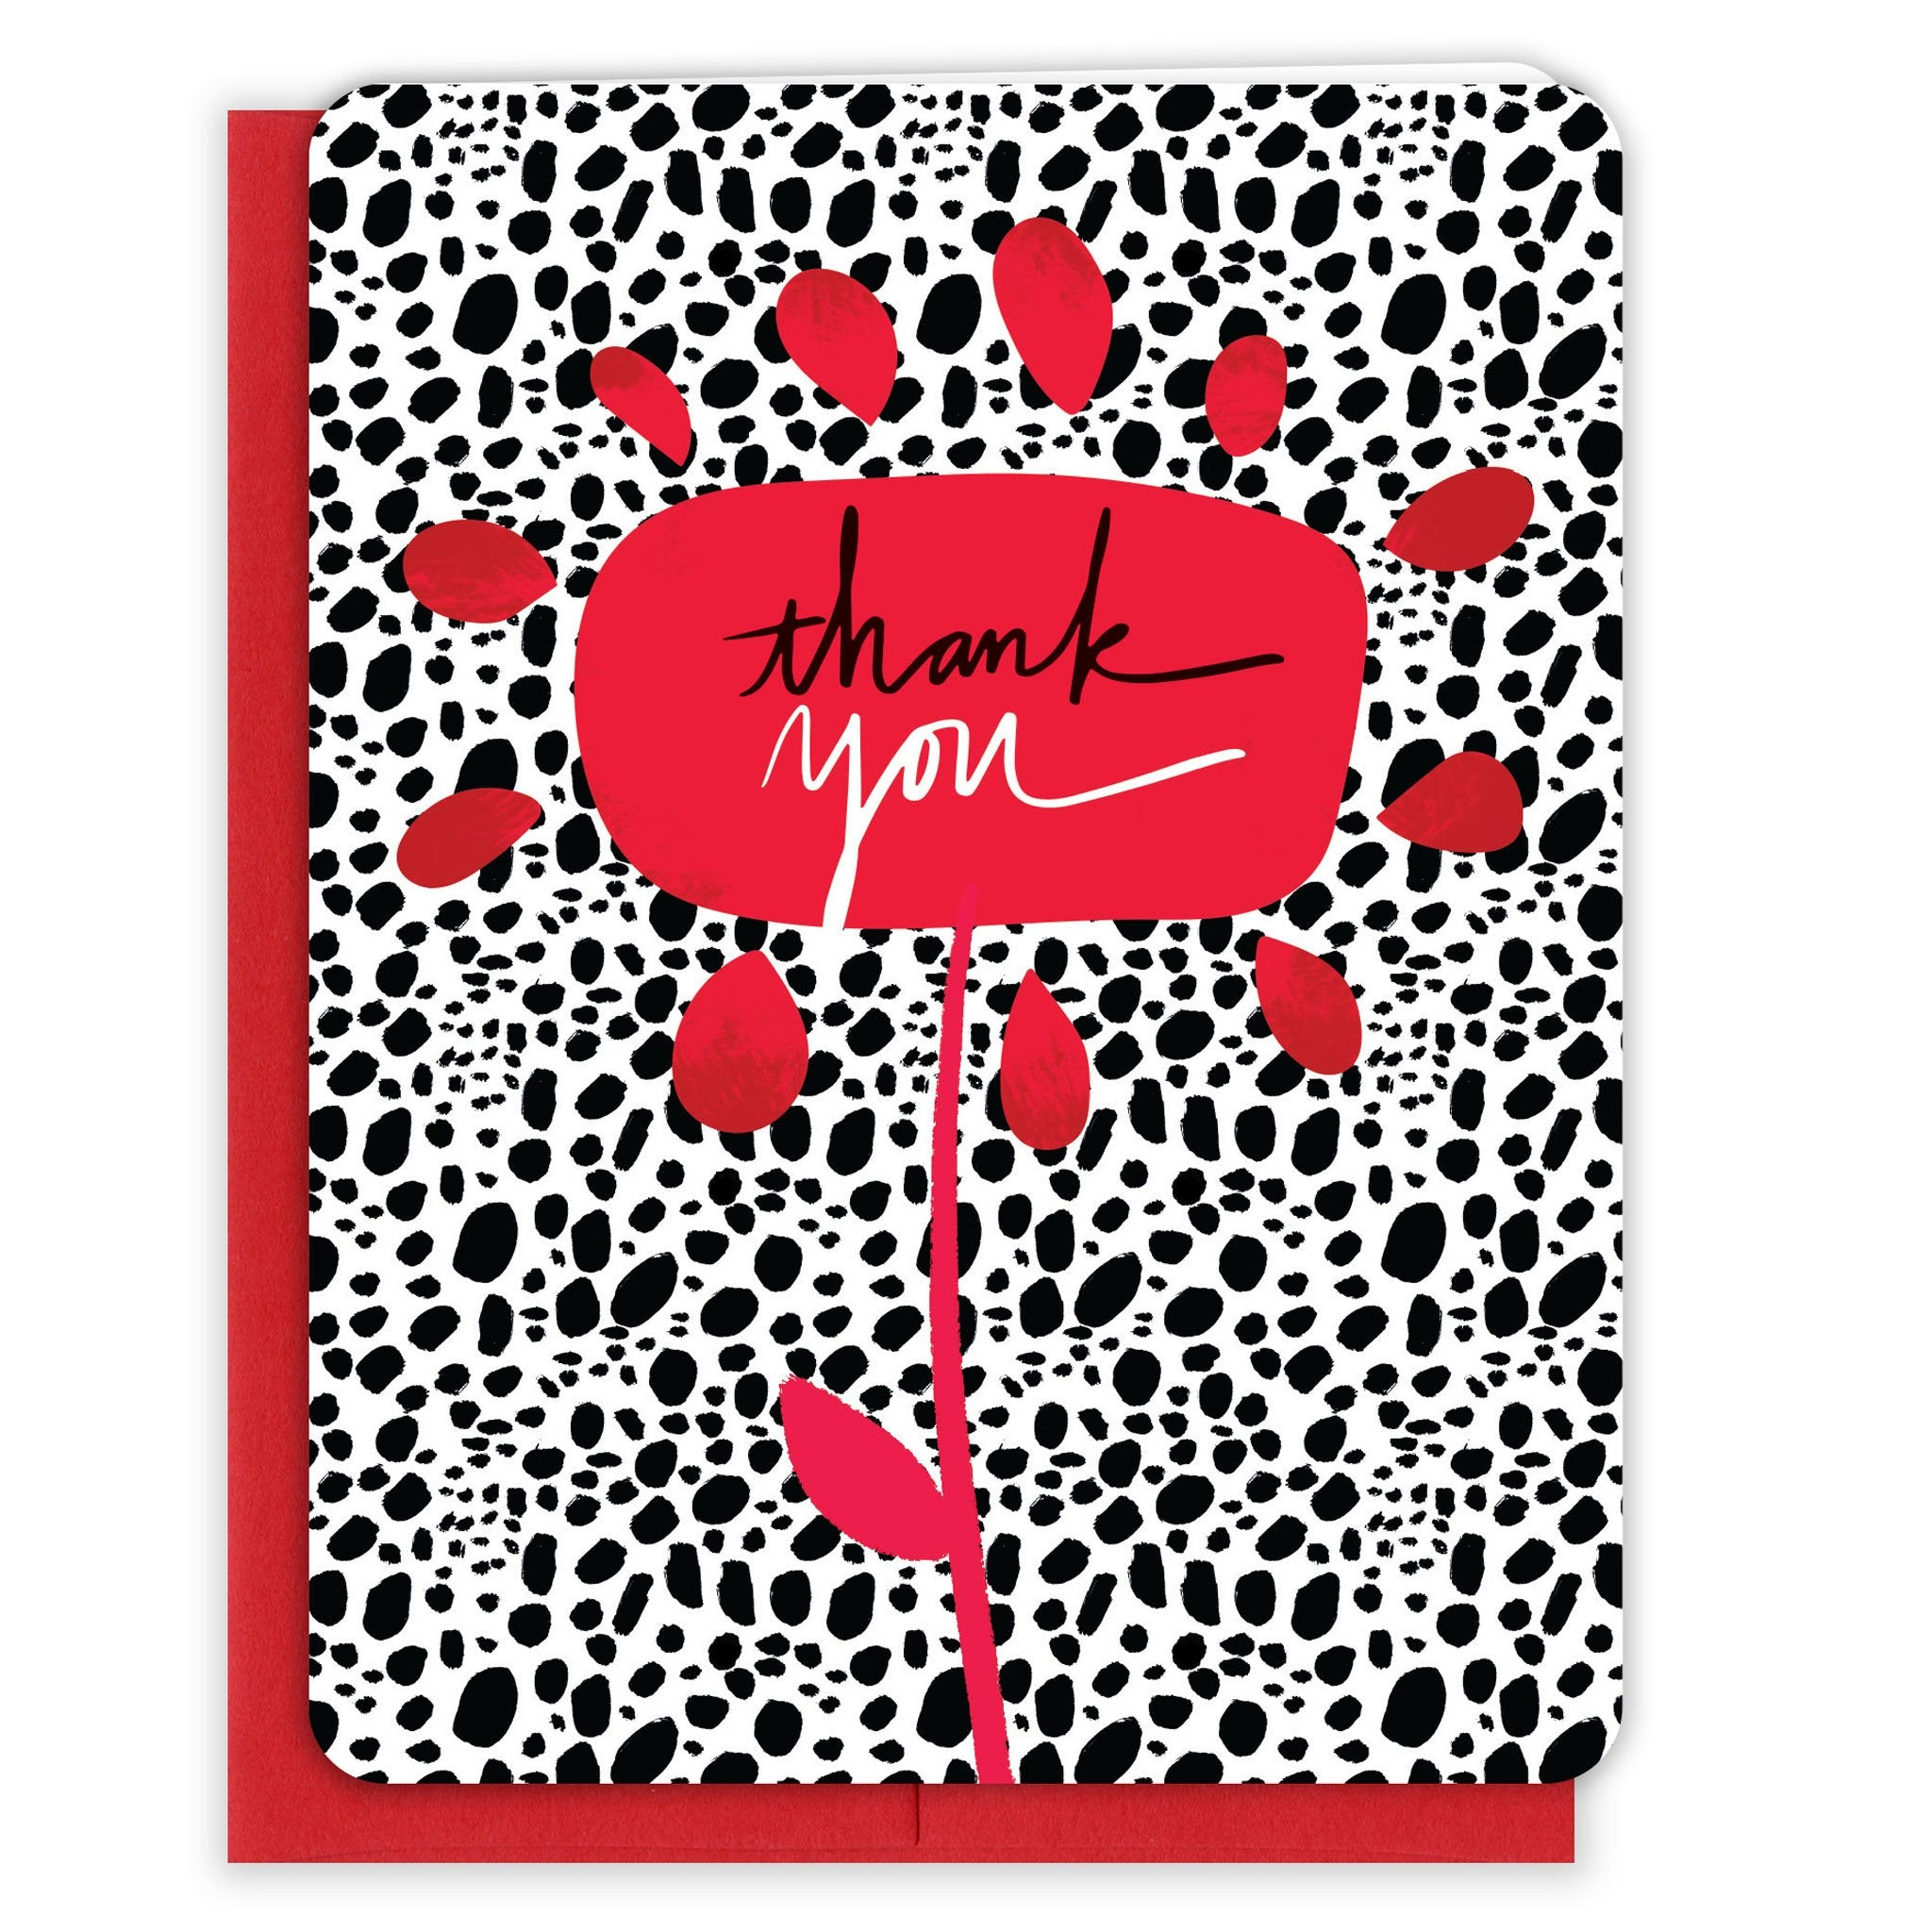 Red-Flower-Thanks-Thank-You-Card